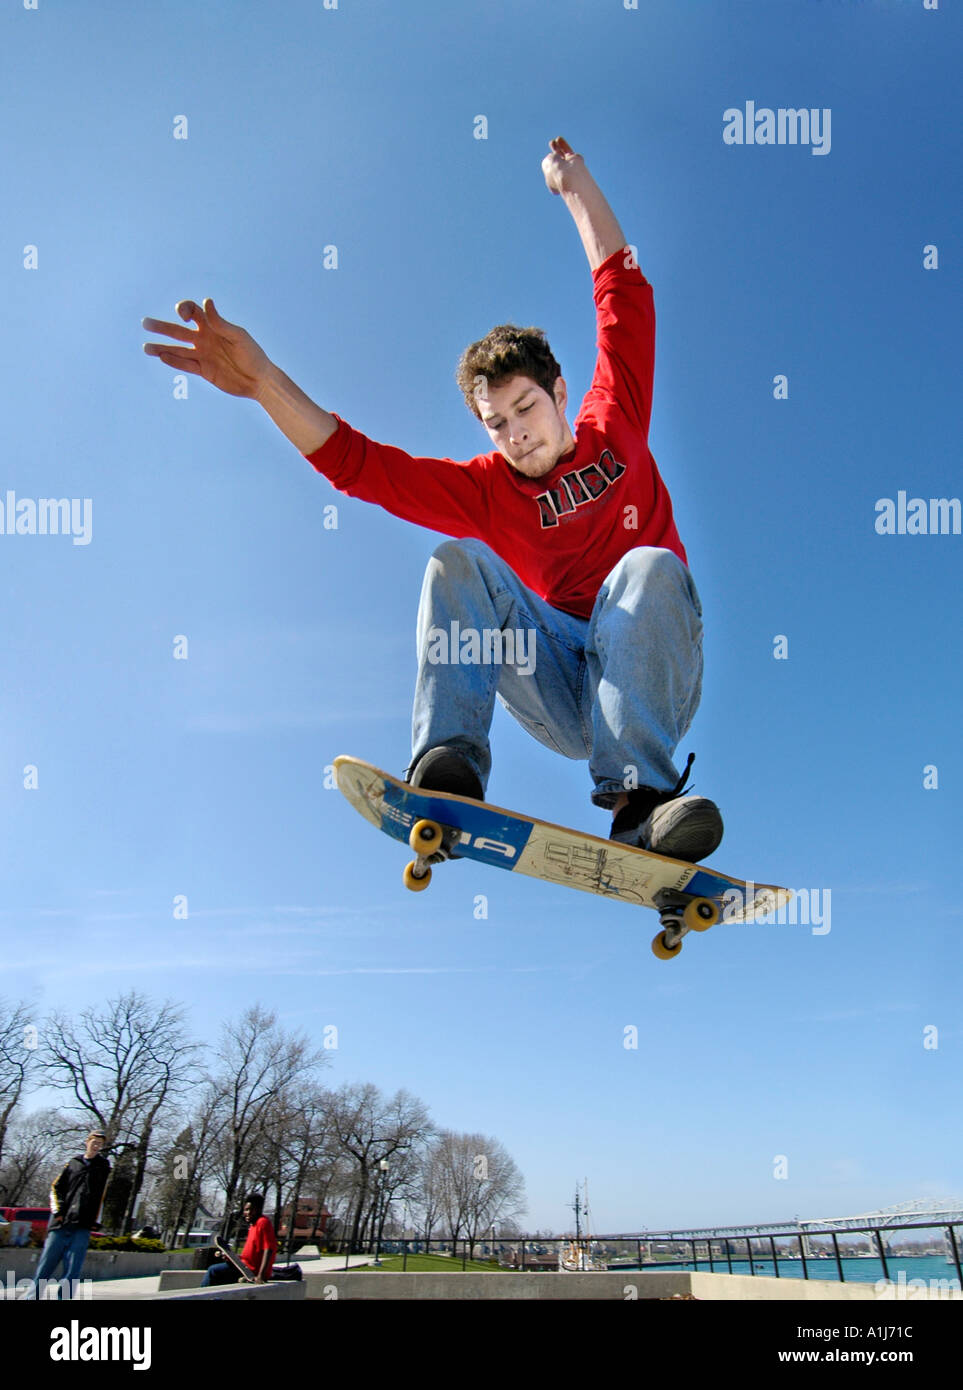 Male teen practices maneuvers on a skate board while jumping high into the air - Stock Image